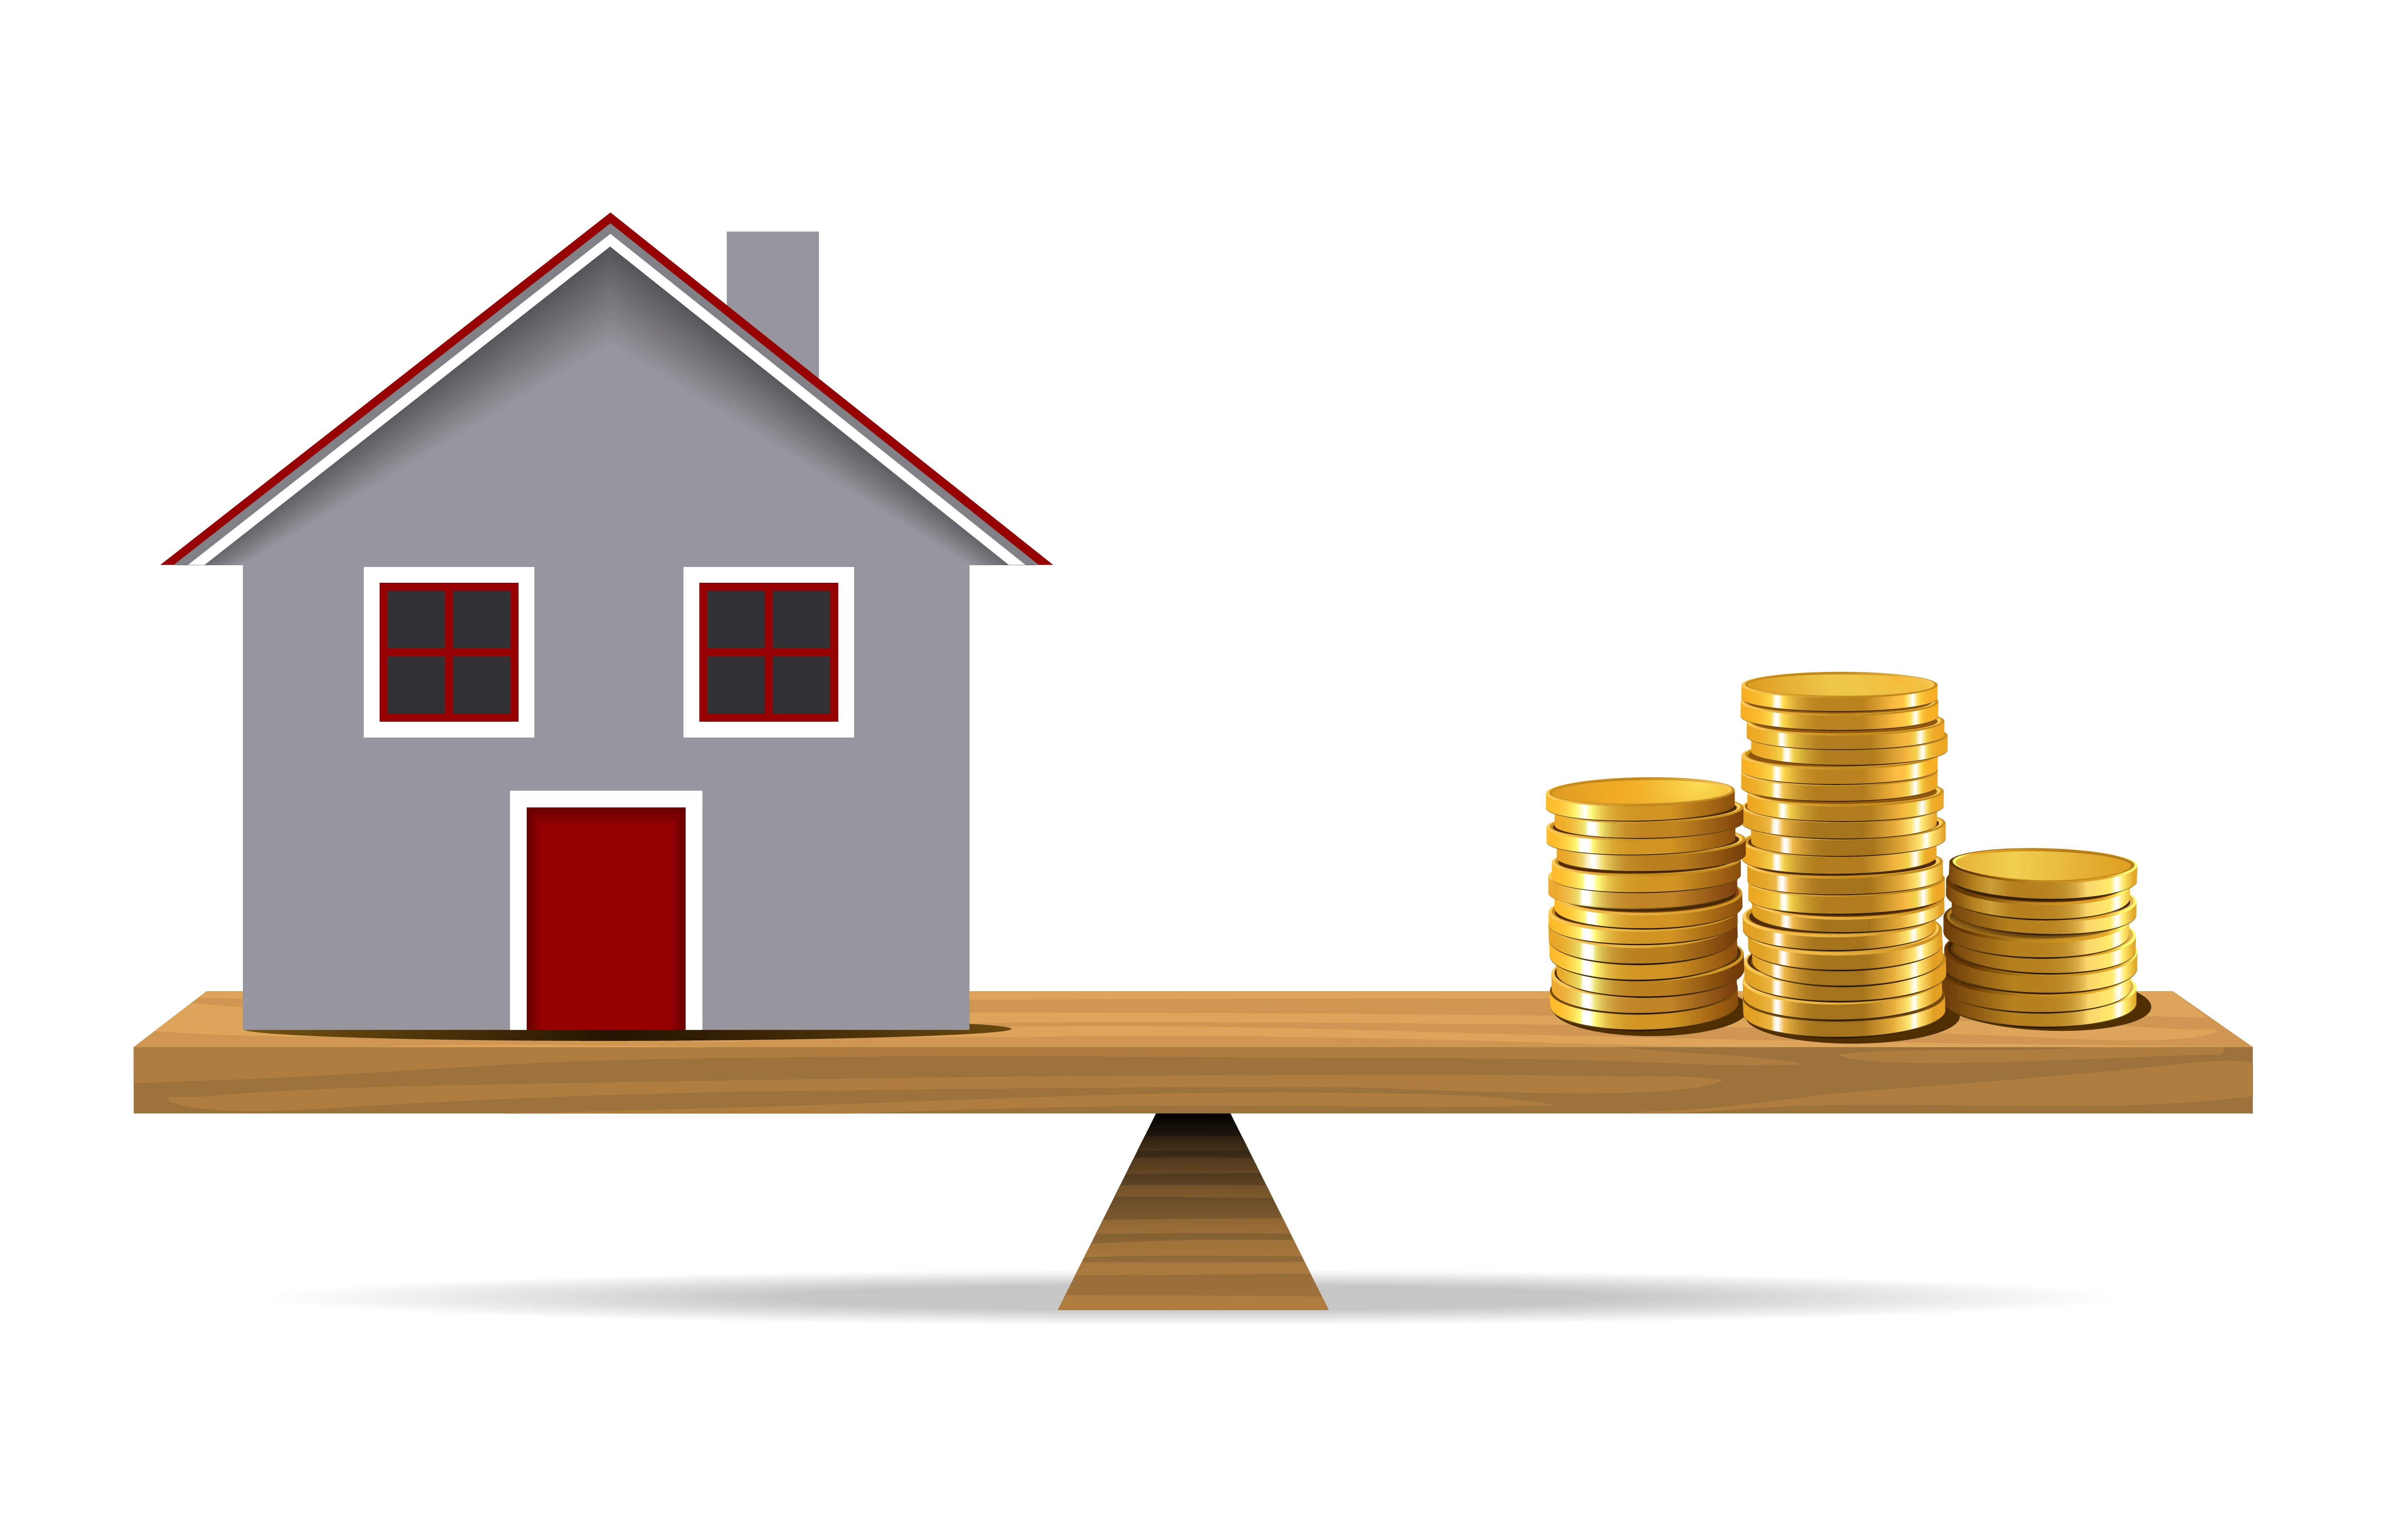 gold coins and mortgage house_istock_RESIZED1.jpg